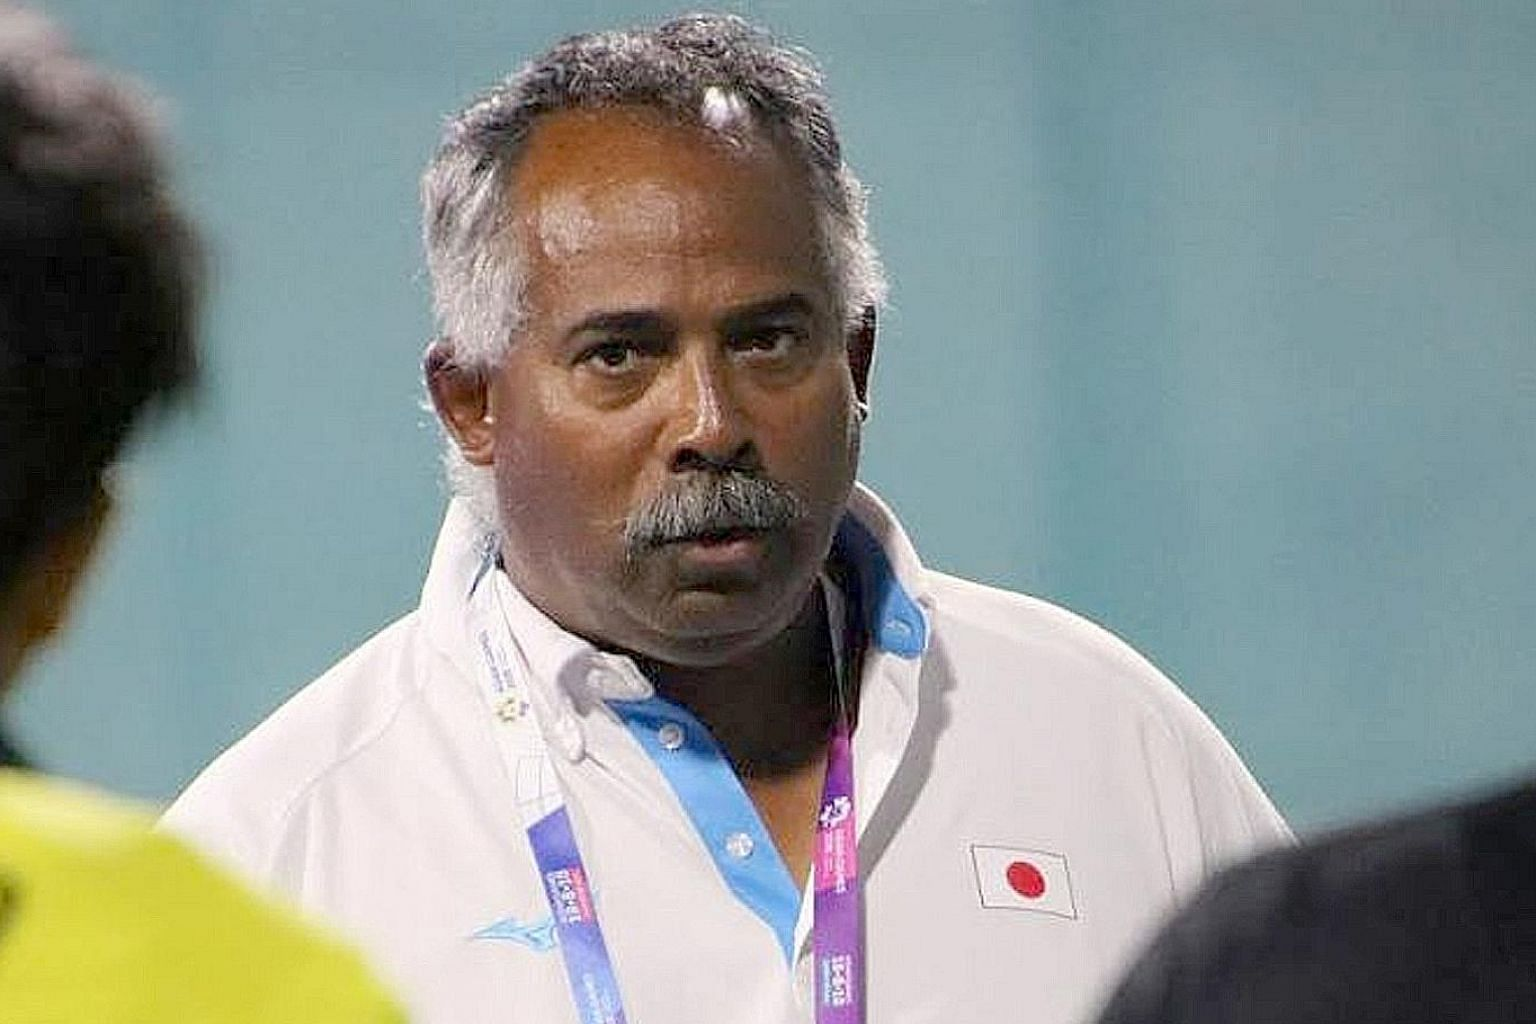 Japan hockey coach Siegfried Aikman, 59, led his unfancied team to their first Asian Games gold medal earlier this year. In the final, Japan were down 2-5 to Malaysia with seven minutes left, made it 6-6, and then won the shoot-out.